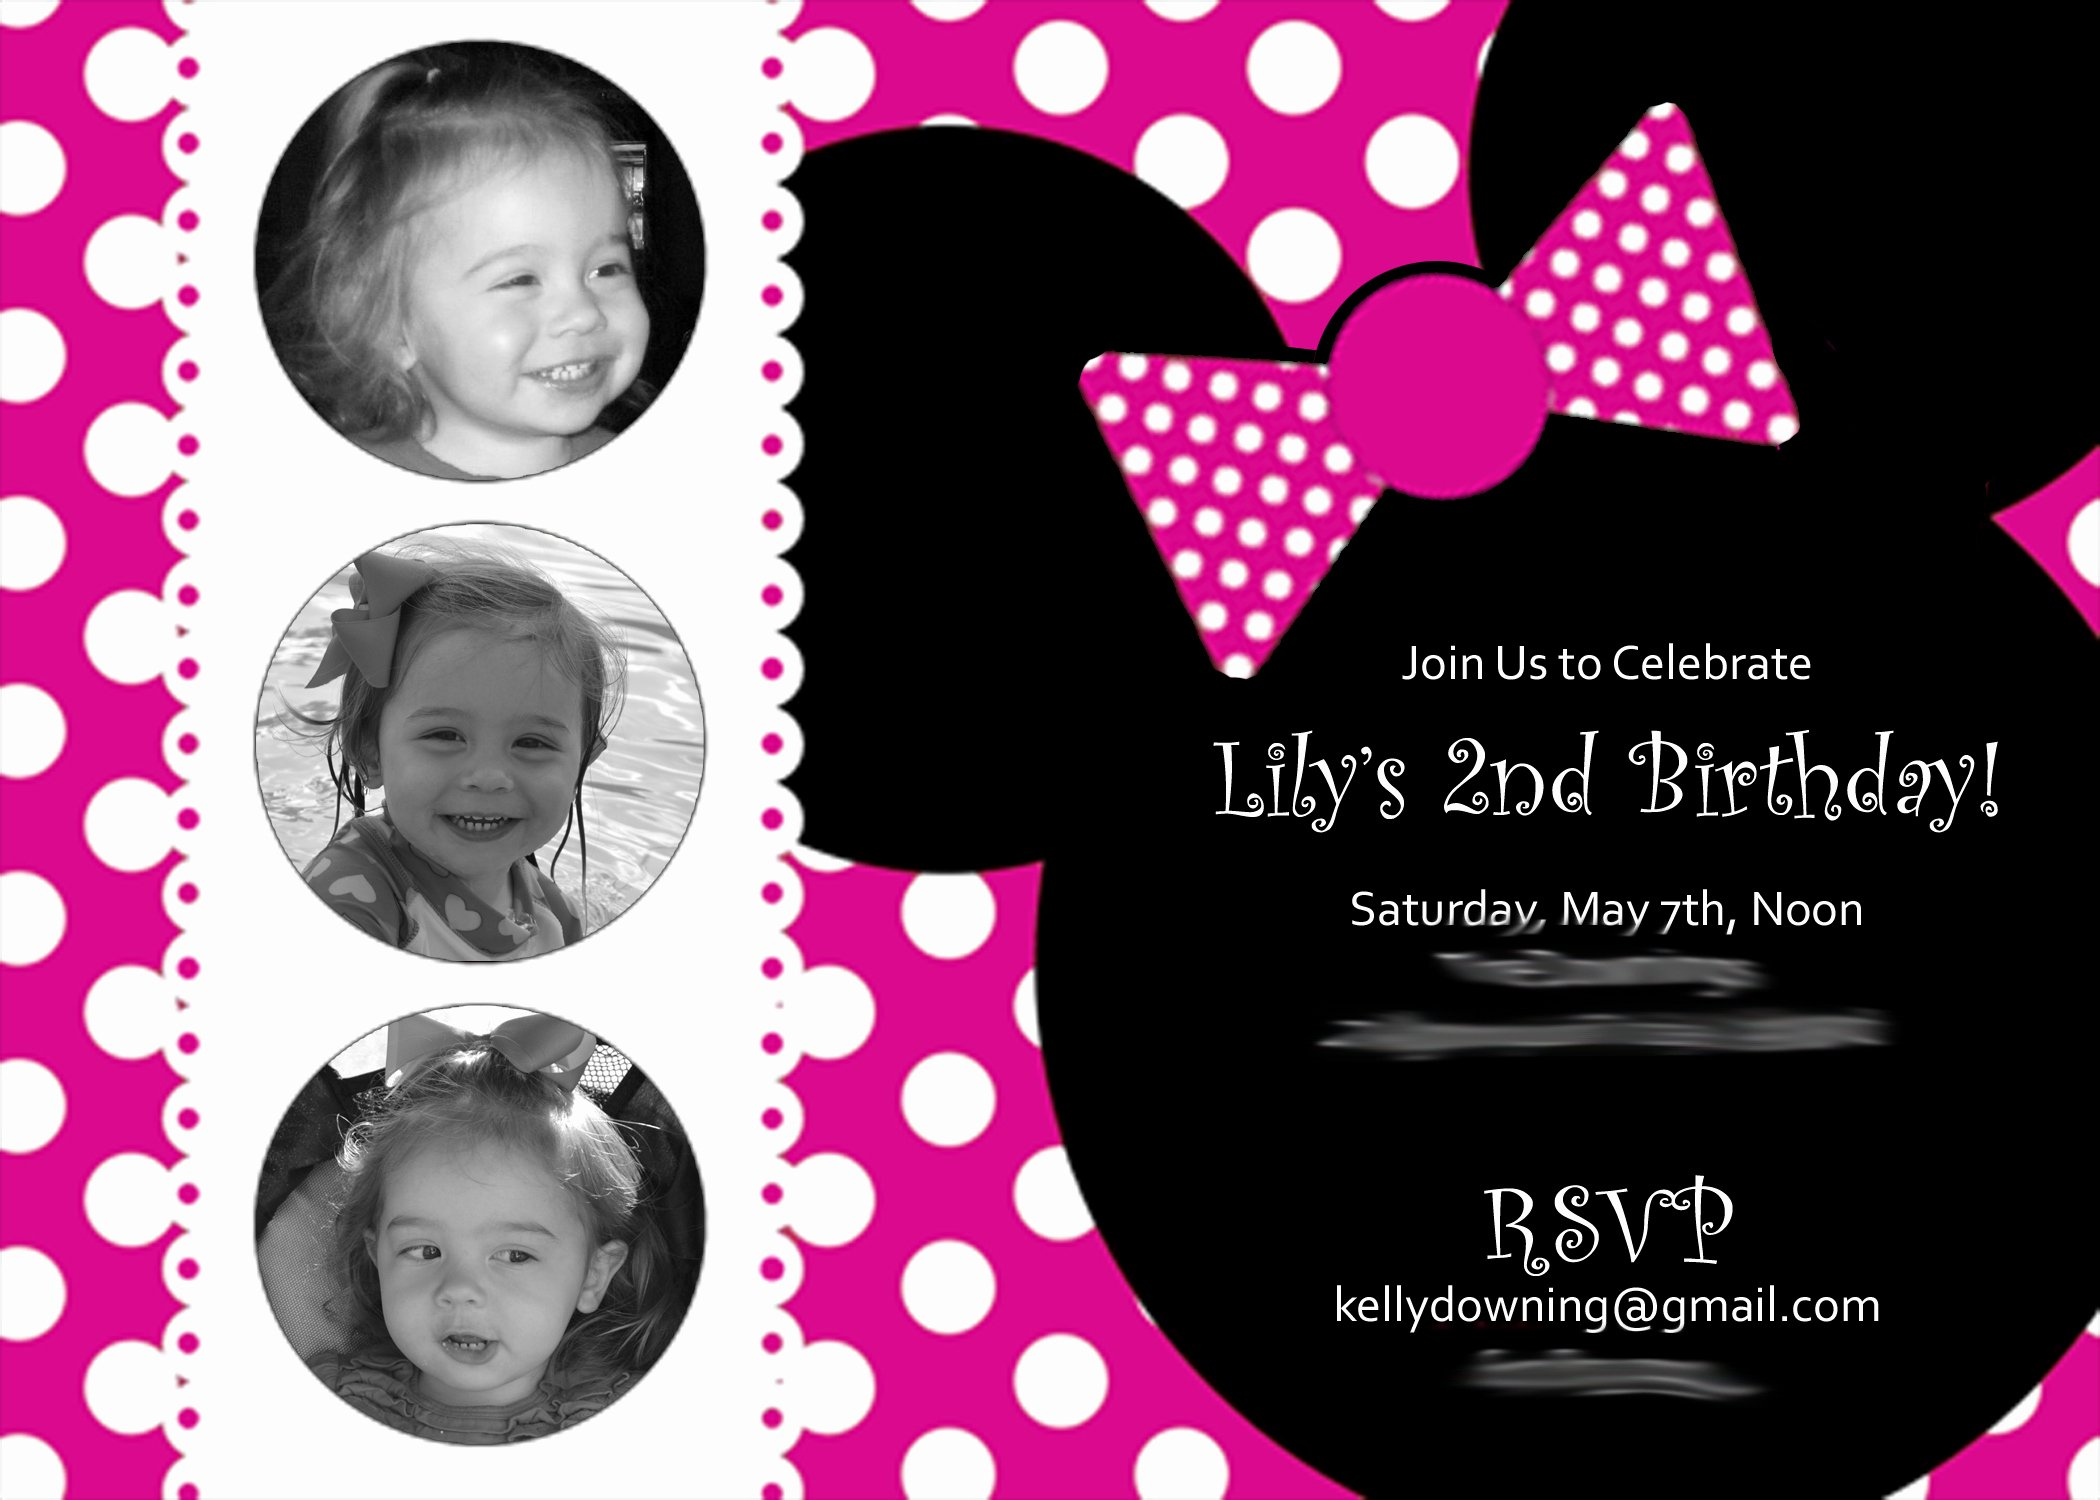 Minnie Mouse Birthday Invitations Luxury A Two Year's Olds Mini Minnie Birthday Party